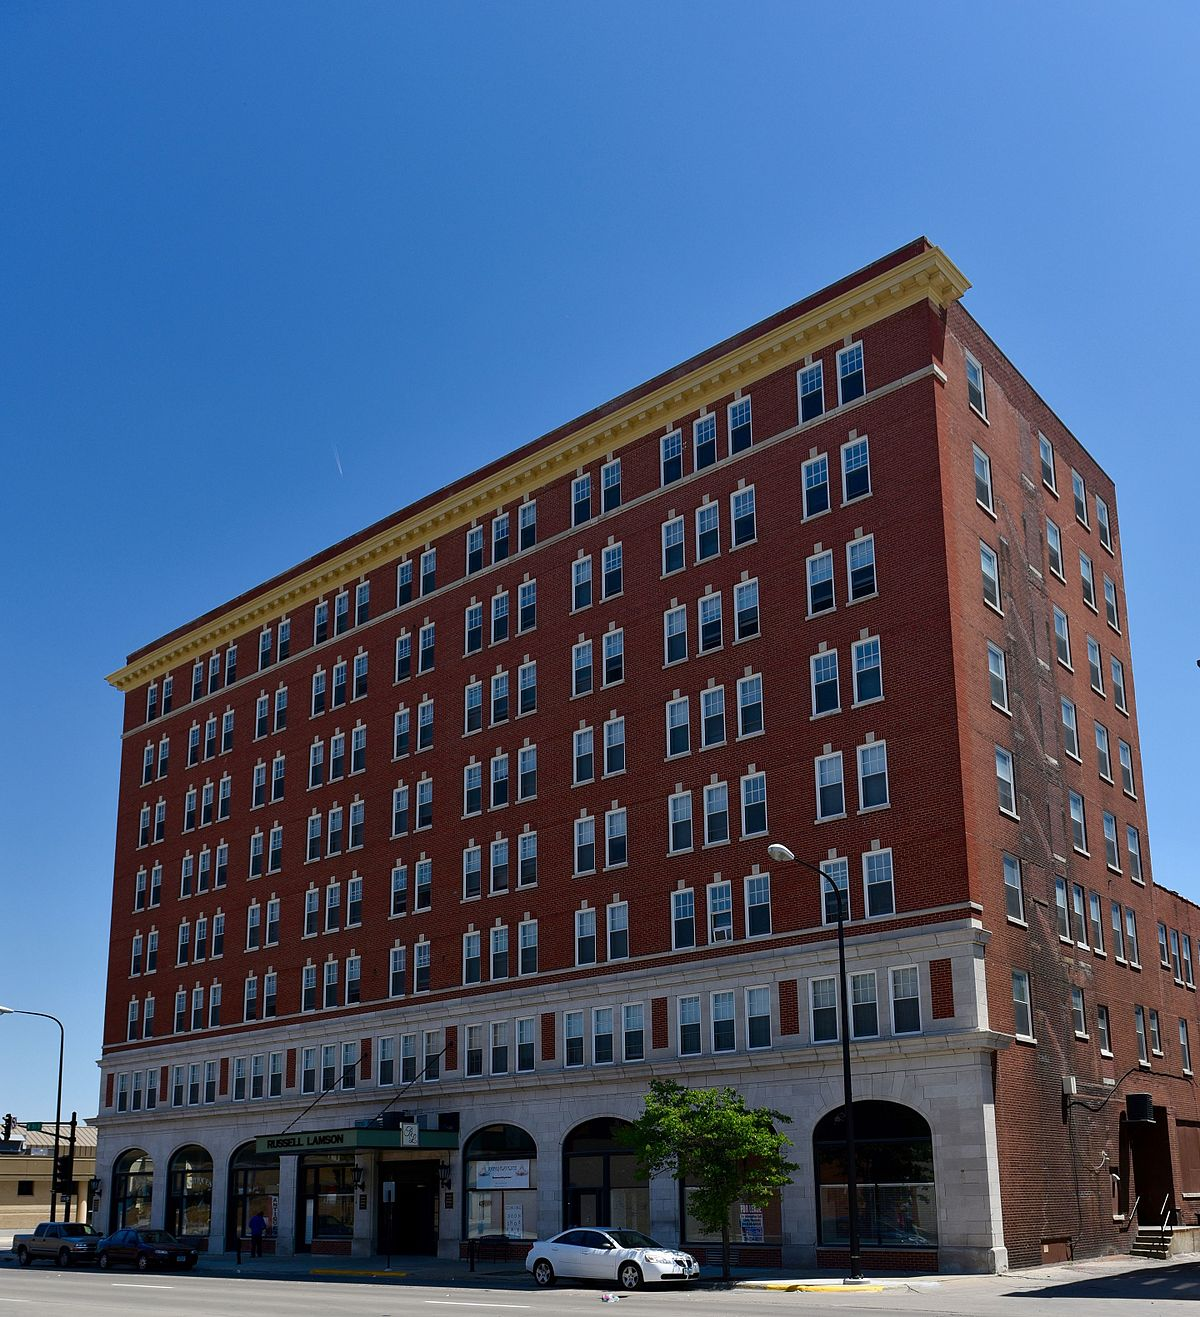 Hotel russell lamson wikidata for Hotels ussel